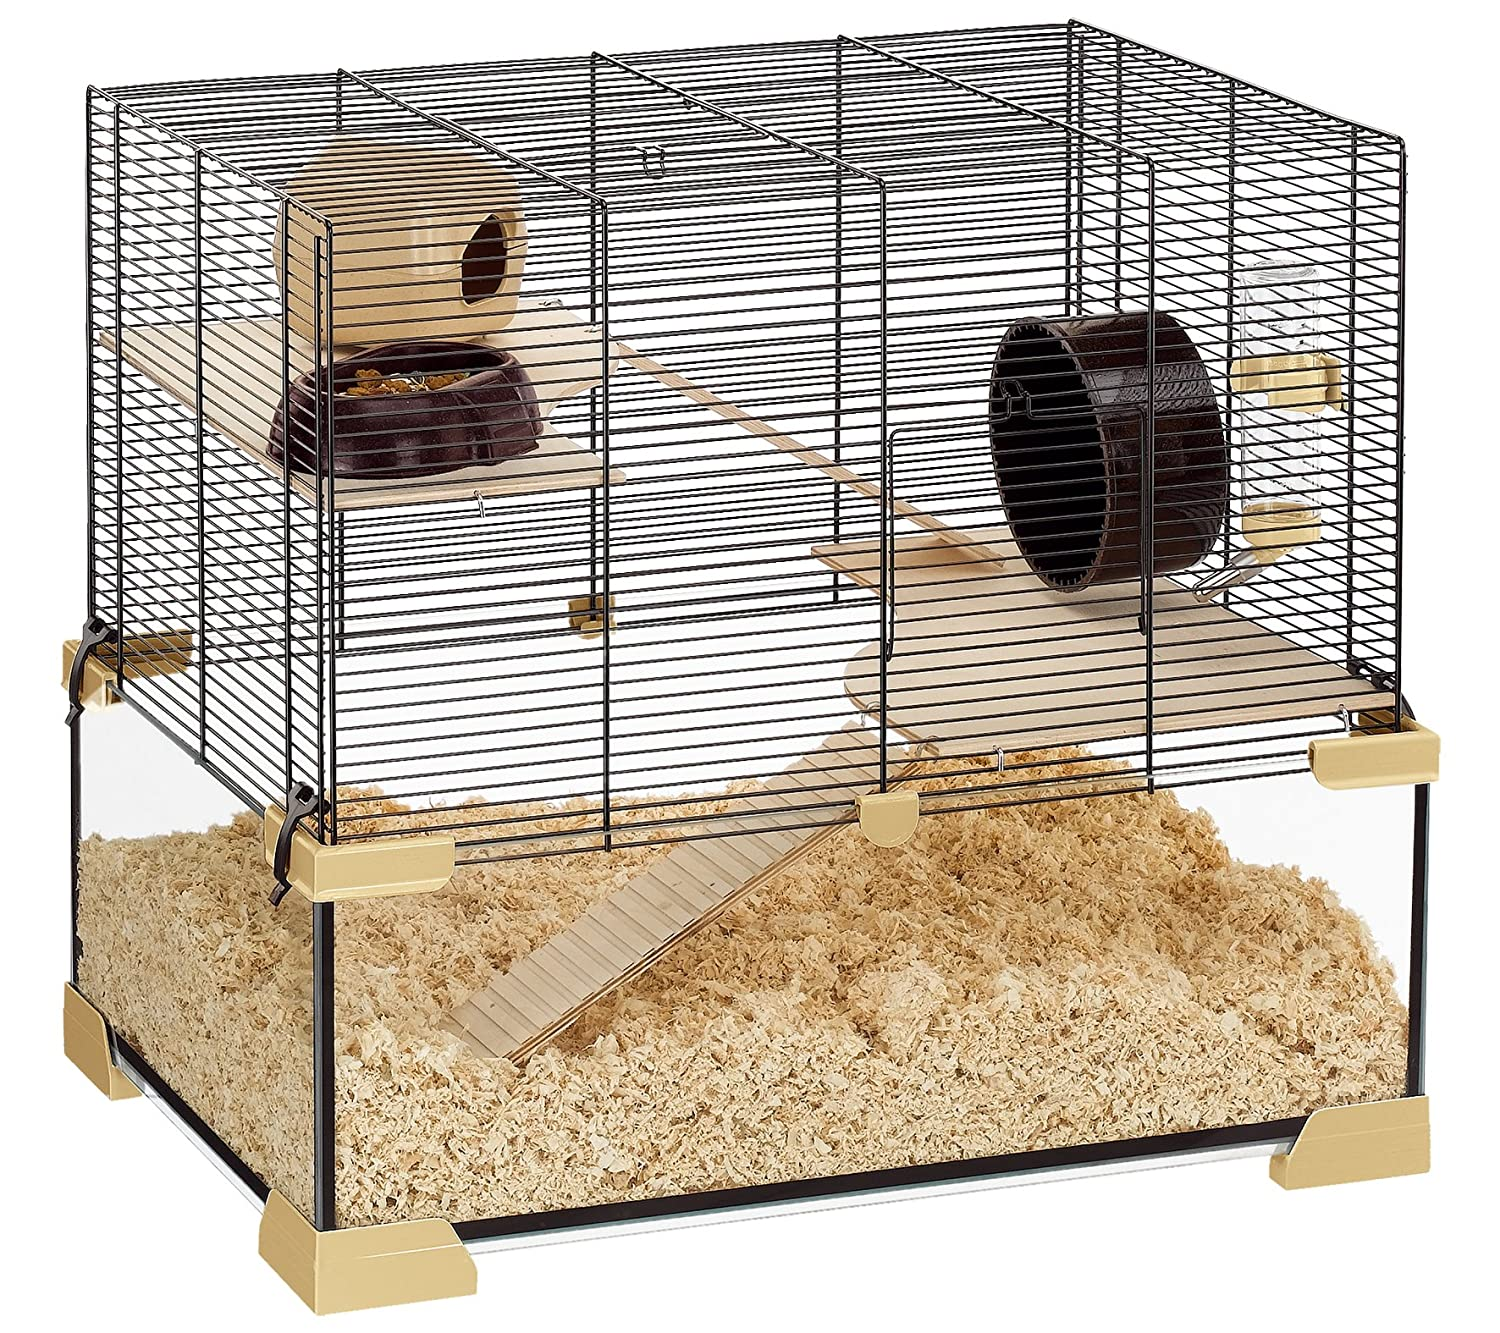 Ferplast Karat 60 glass hamster cage